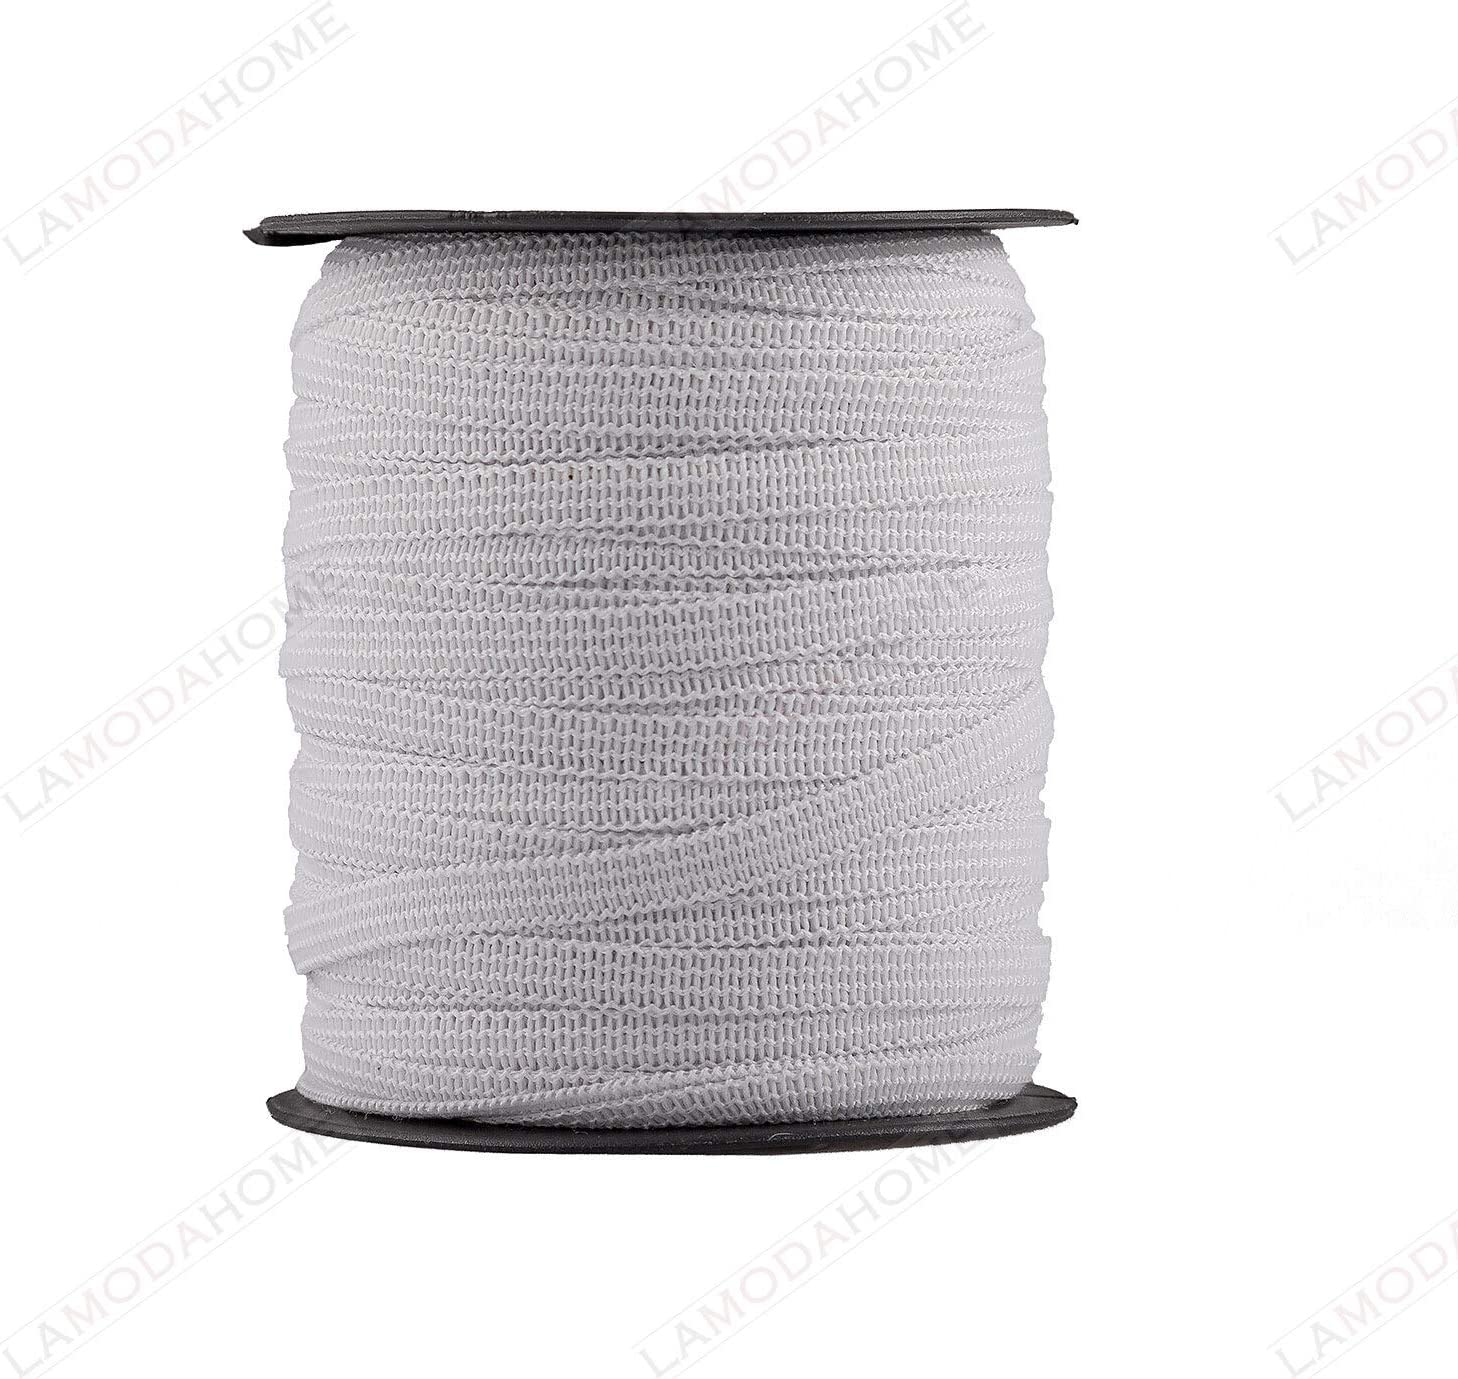 White 10 Yards 1//4 Elastic Band Sewing Stretch Crafts Masks Soft Ear-Friend Quality 10 Meter - 1//4 inch|6 mm Width DIY Handmade Mask Rope//Cord US Stock Comes with Carton as Pictured